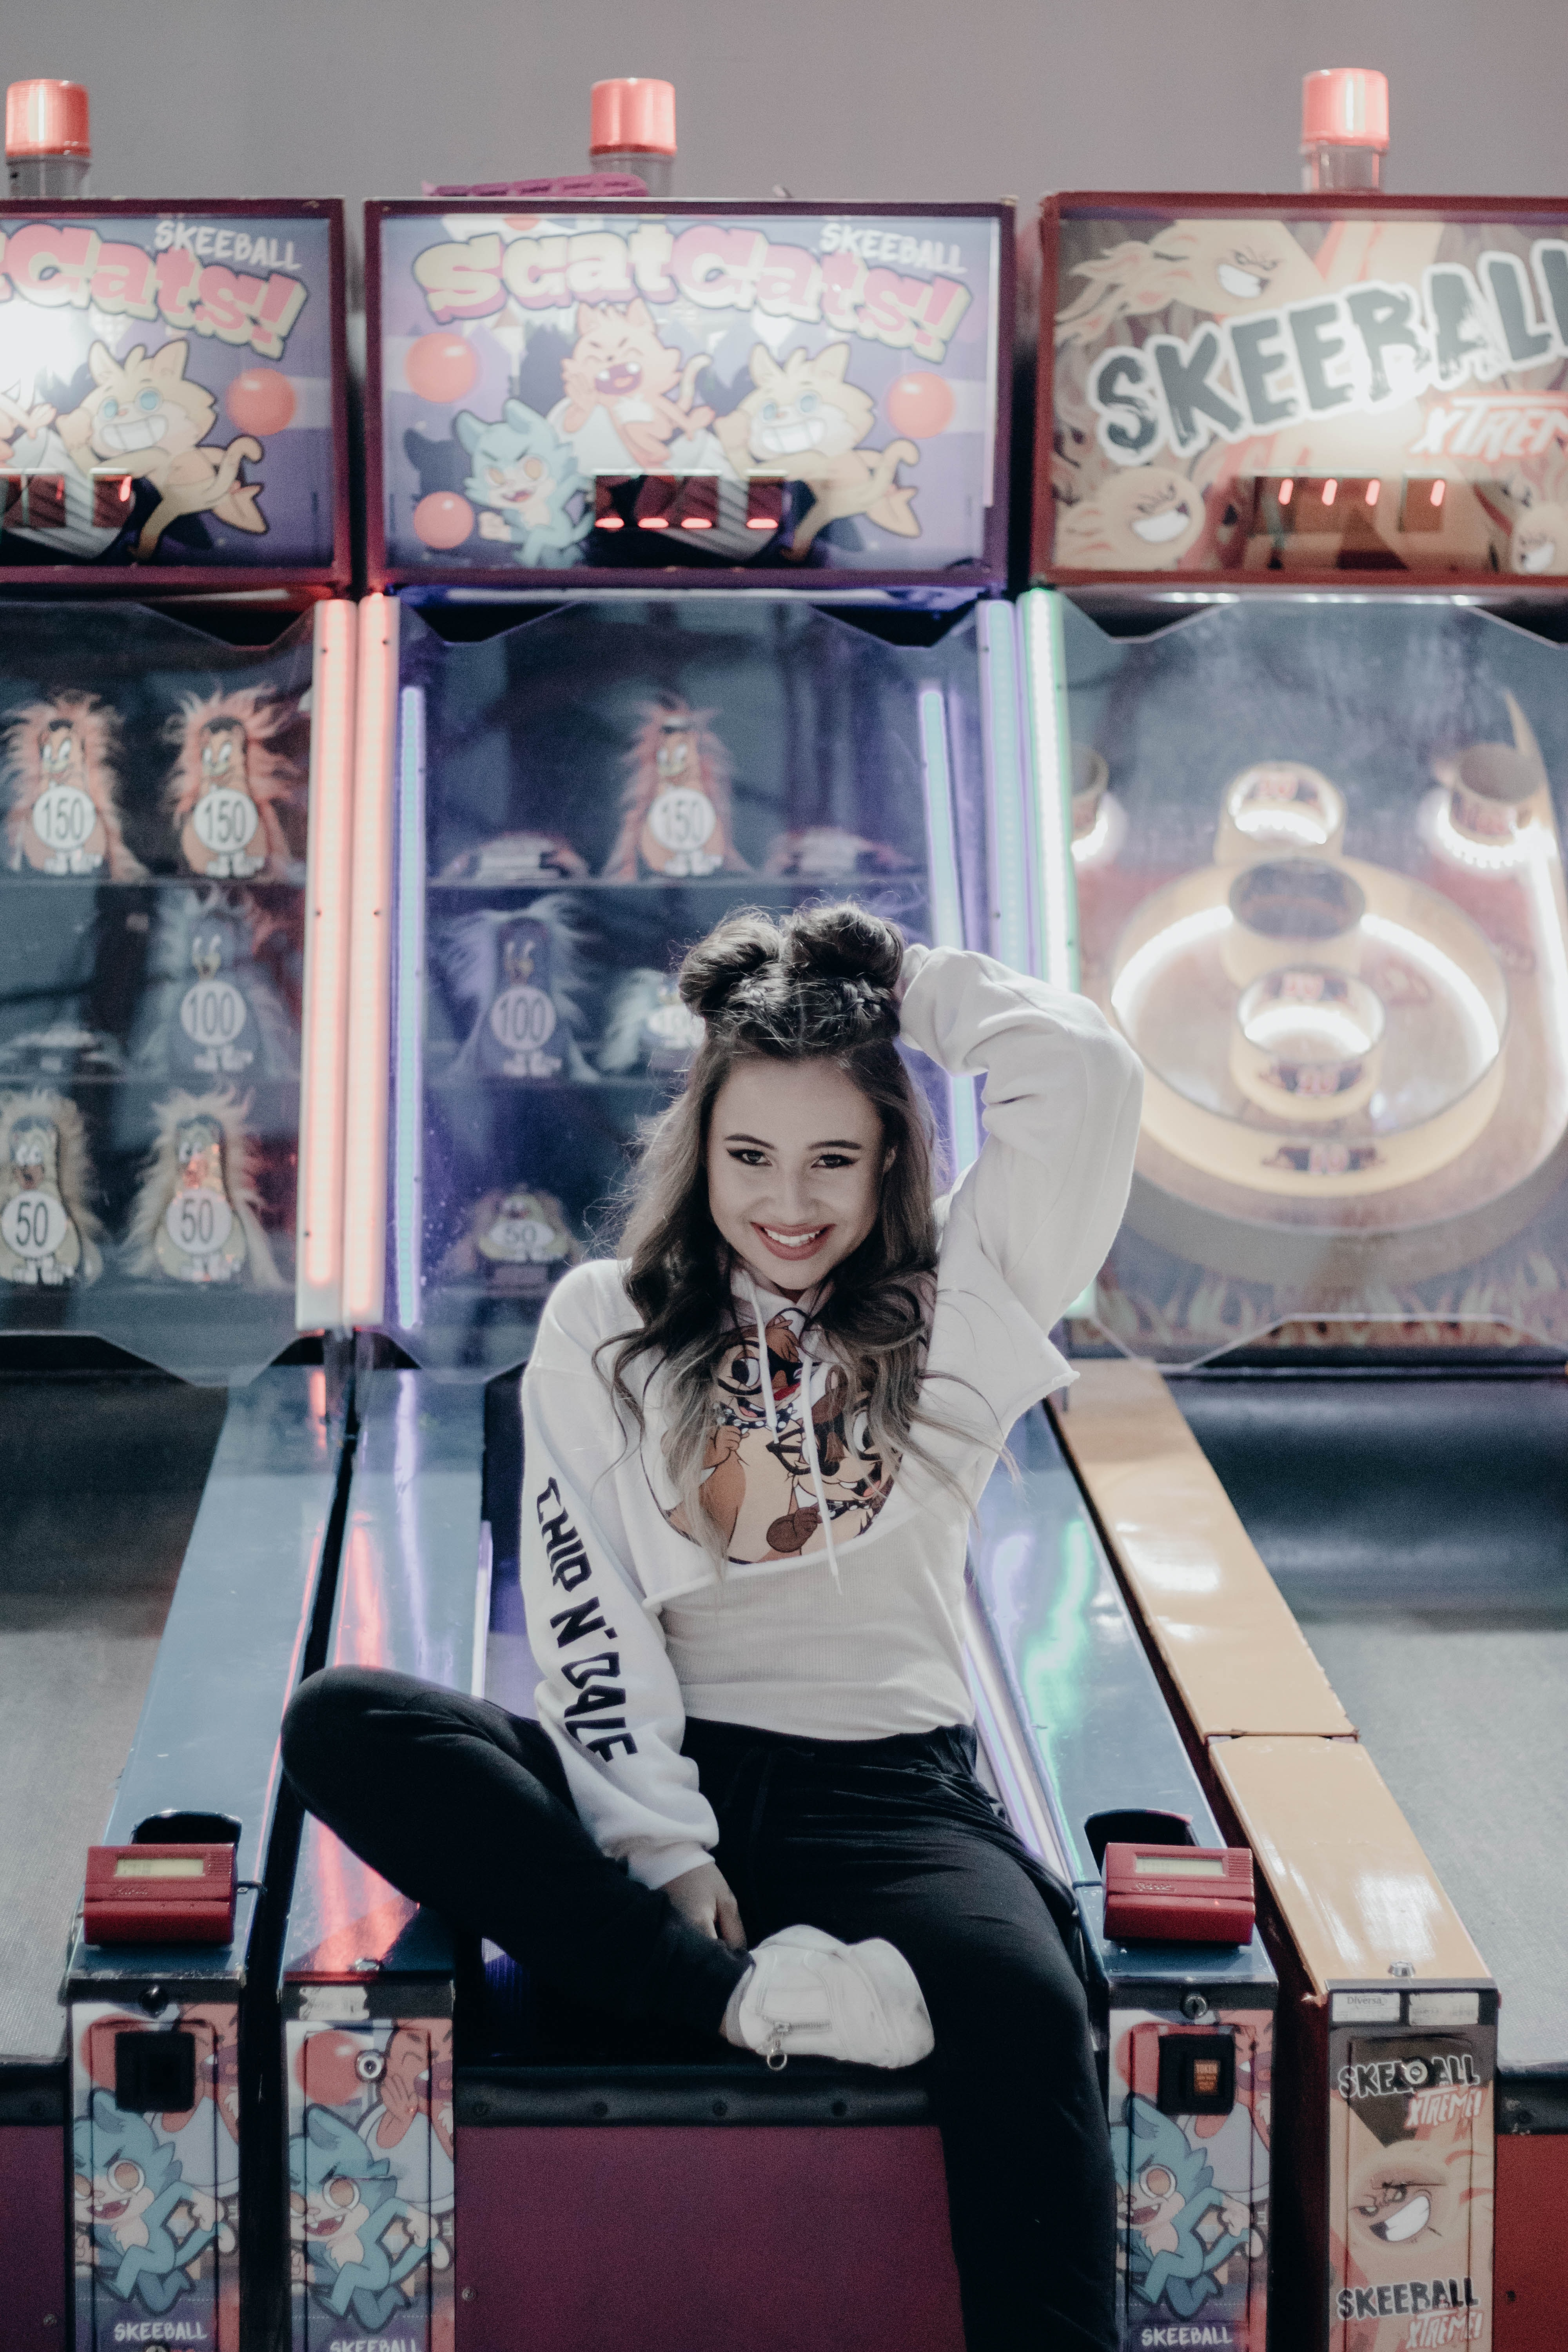 woman sitting in pinball